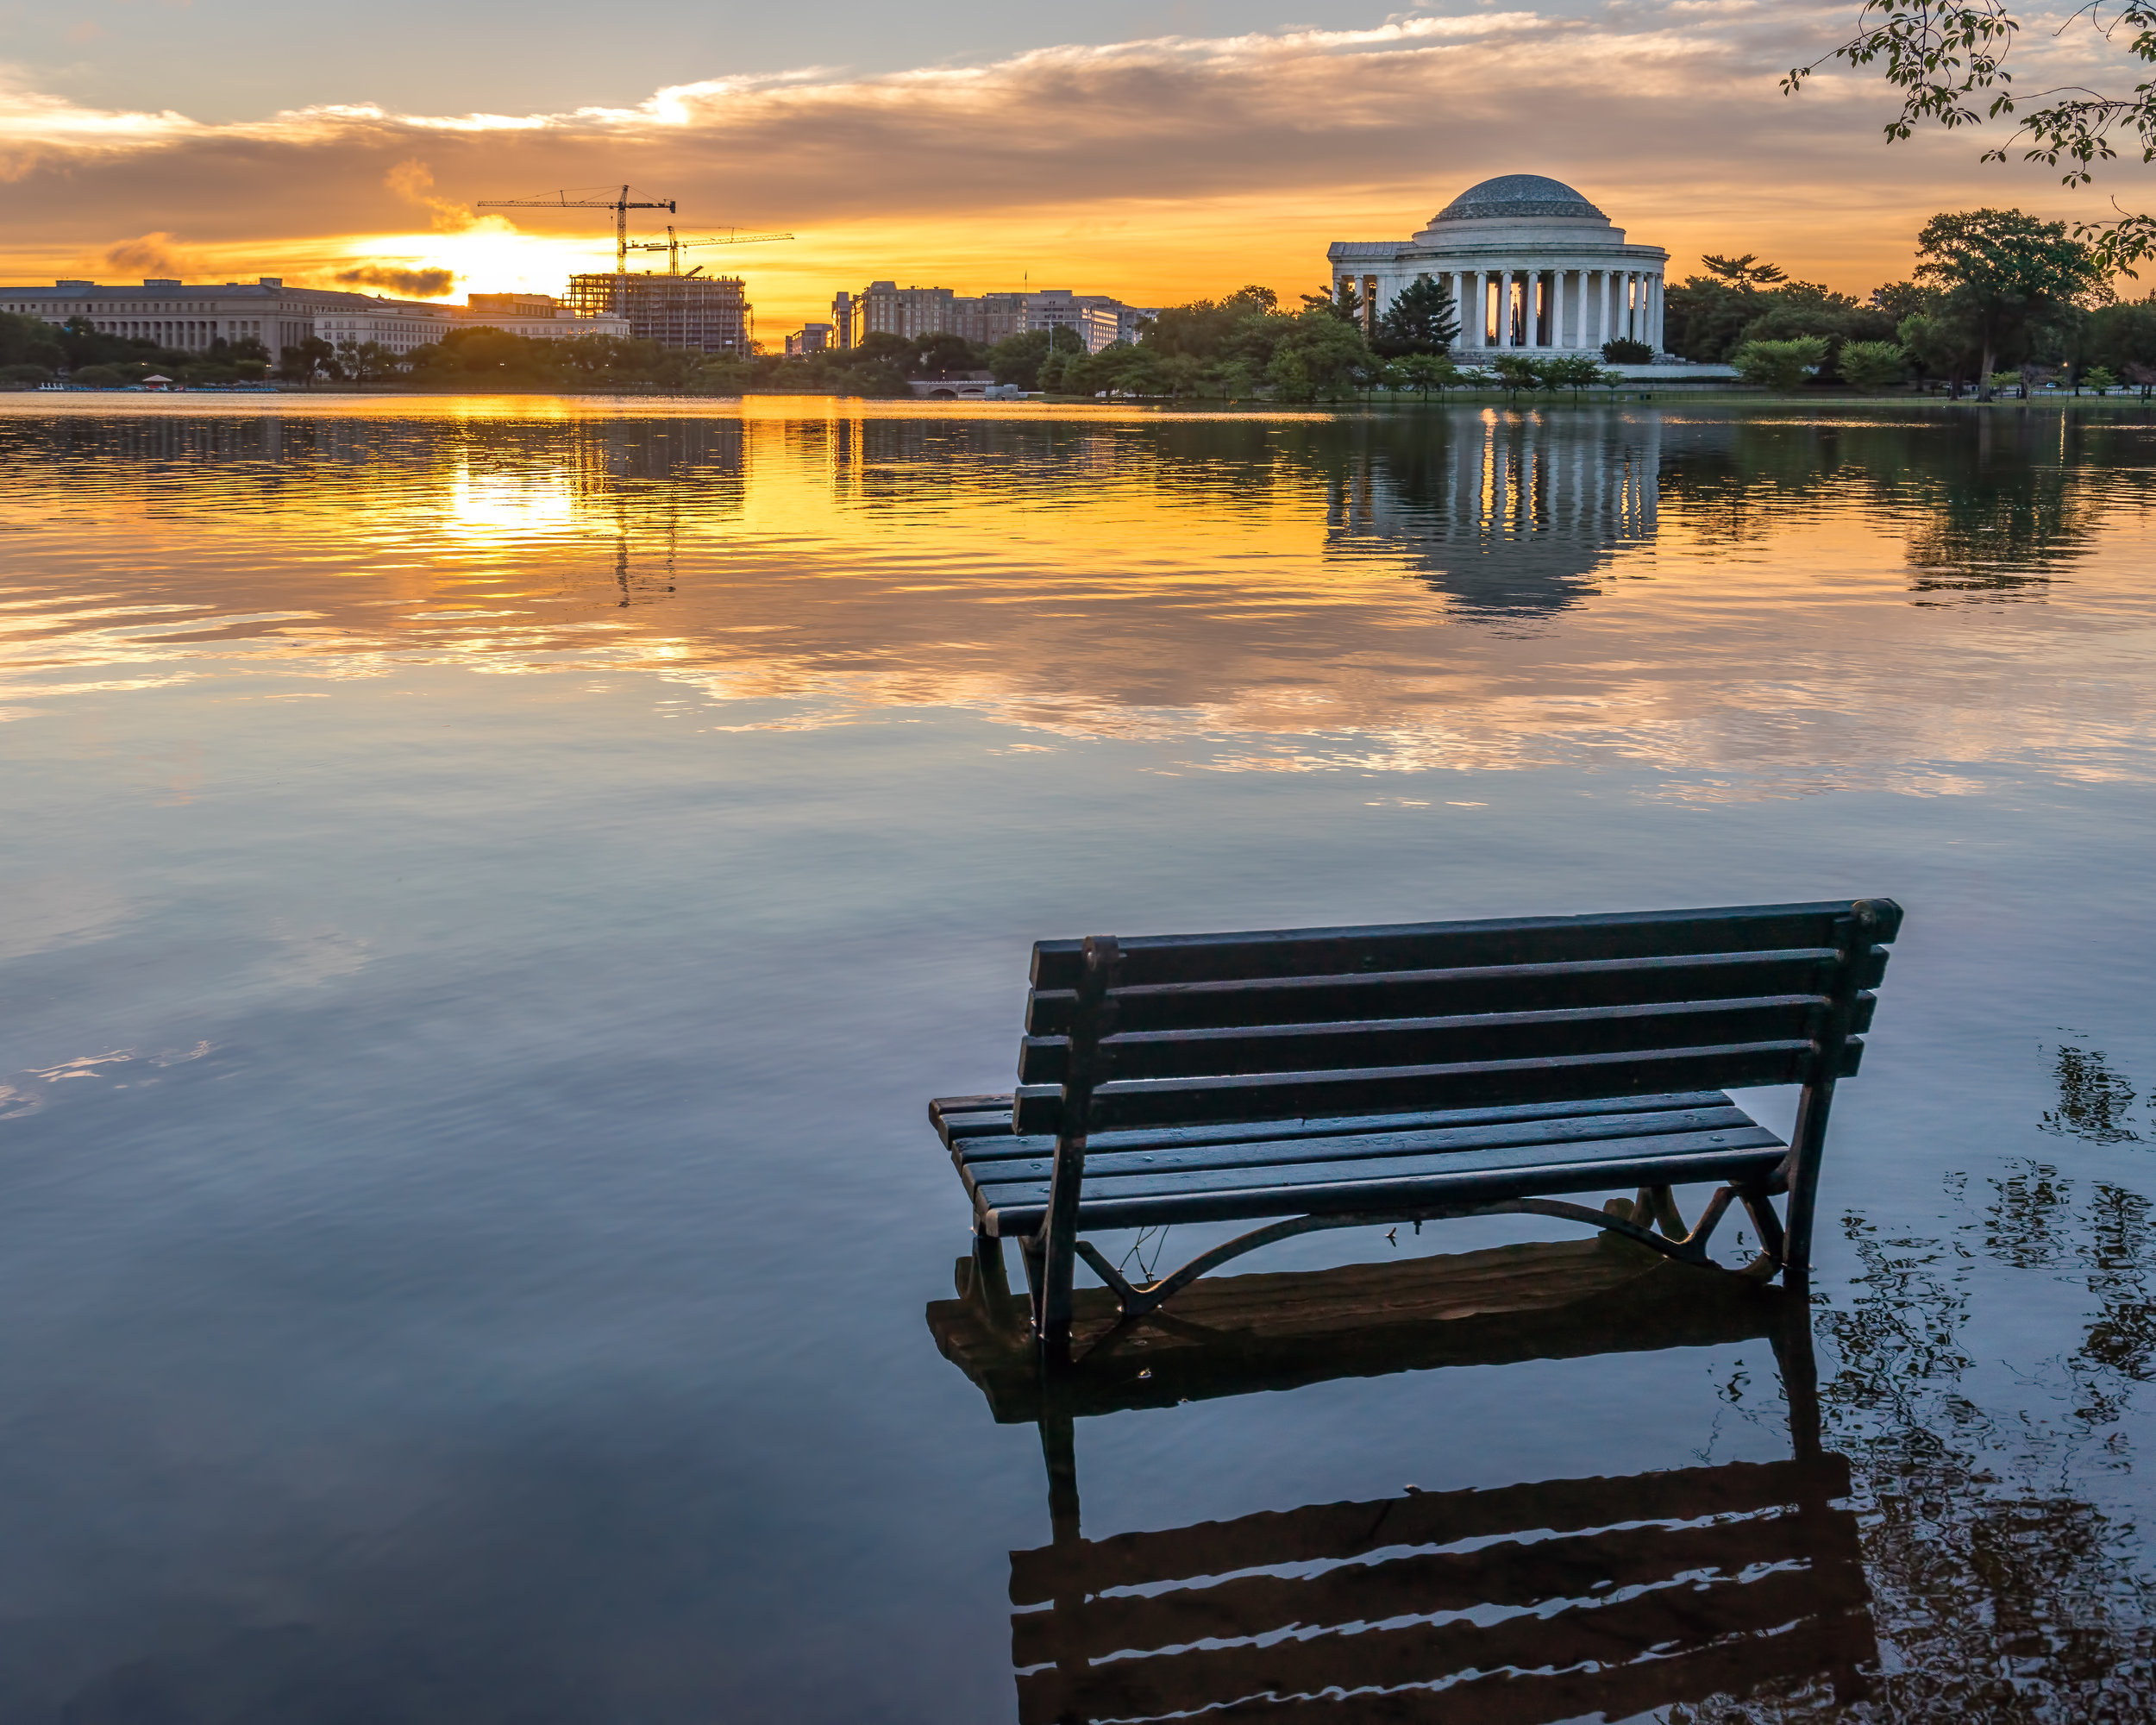 Then you have the surprises such as the Tidal Basin flooding and giving unique opportunities to capture it. Also brings to light the struggles they have so helping to preserve the beauty always good to look at investing in the NPS / National Mall for maintaining these beauties. ---- Sony A7R3 --- 6:12am -- Sony 16-35/29mm - 1/200, F6.3, ISO 400, Handheld.